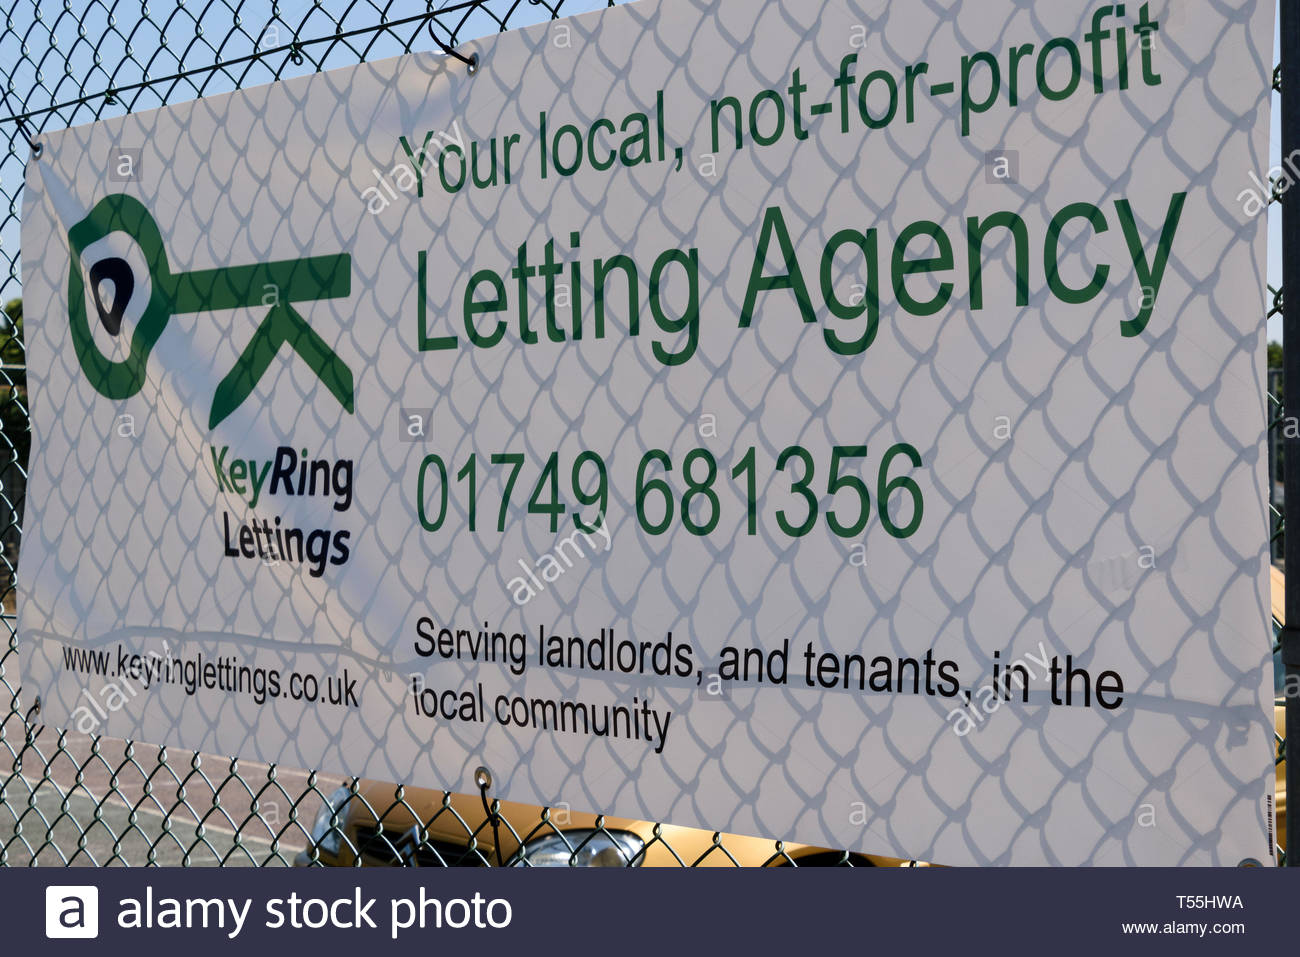 Advertising banner for KeyRing Lettings, a local not - for - profit Letting Agency in Shepton Mallet, Somerset, England, UK - Stock Image